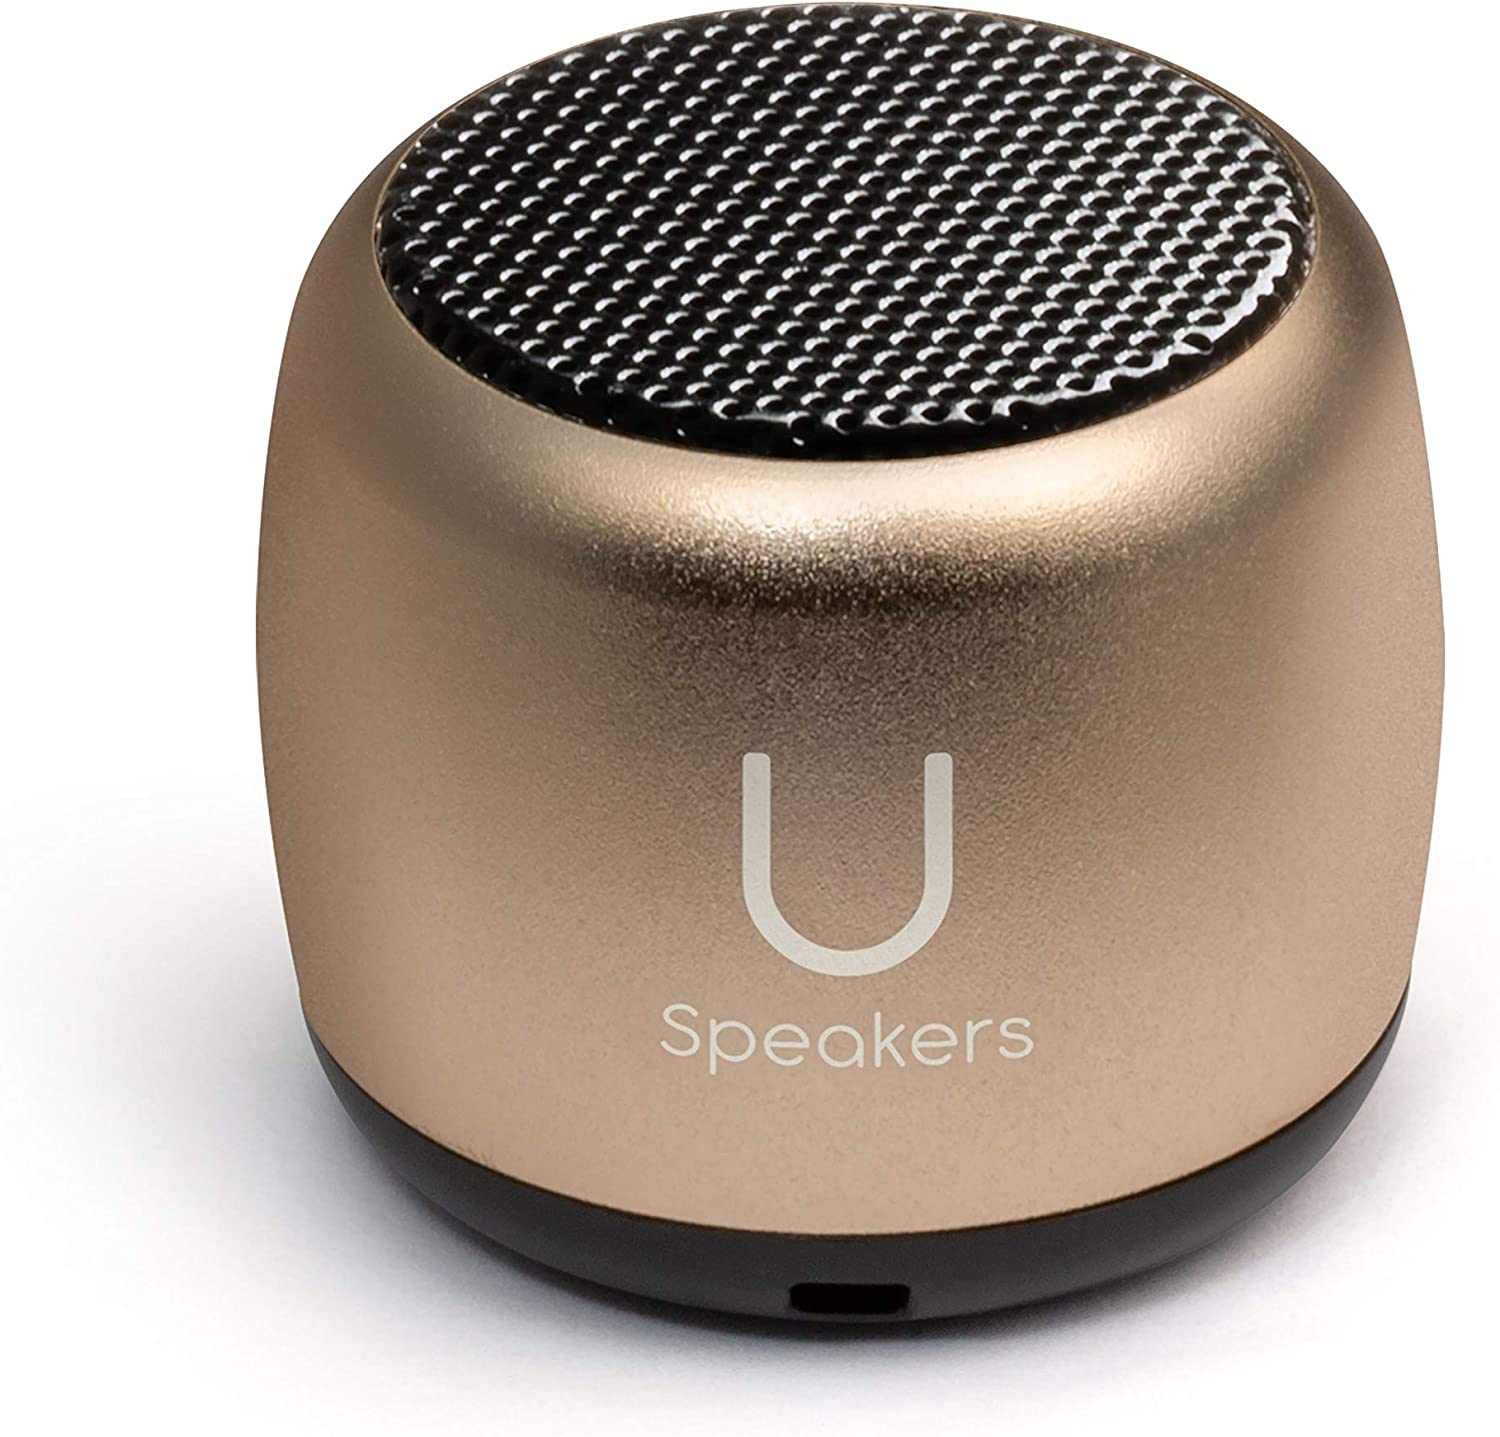 U Micro Speaker - Coin-Sized Portable Wireless Bluetooth 4.2 (Gold) - TWS Stereo Sound with Built-in Mic and Remote Shutter - 3-Hour Playtime, Aluminum - Perfect for Apple iPhone iOS Android …